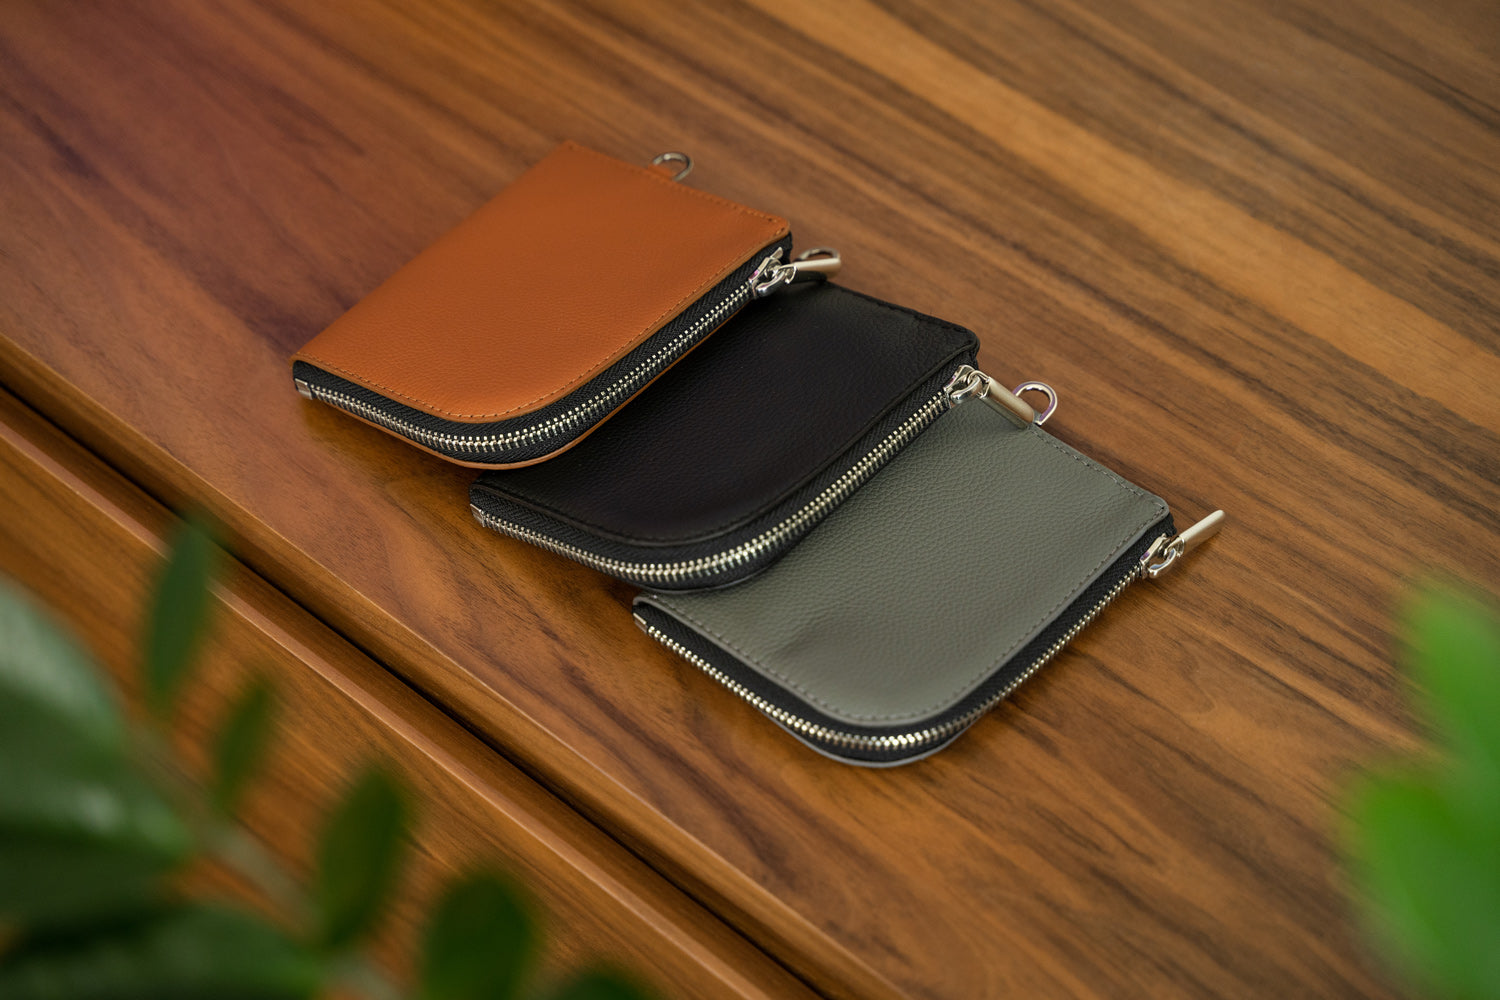 Zip leather wallets. Stylish and Functional handcrafted zip wallets